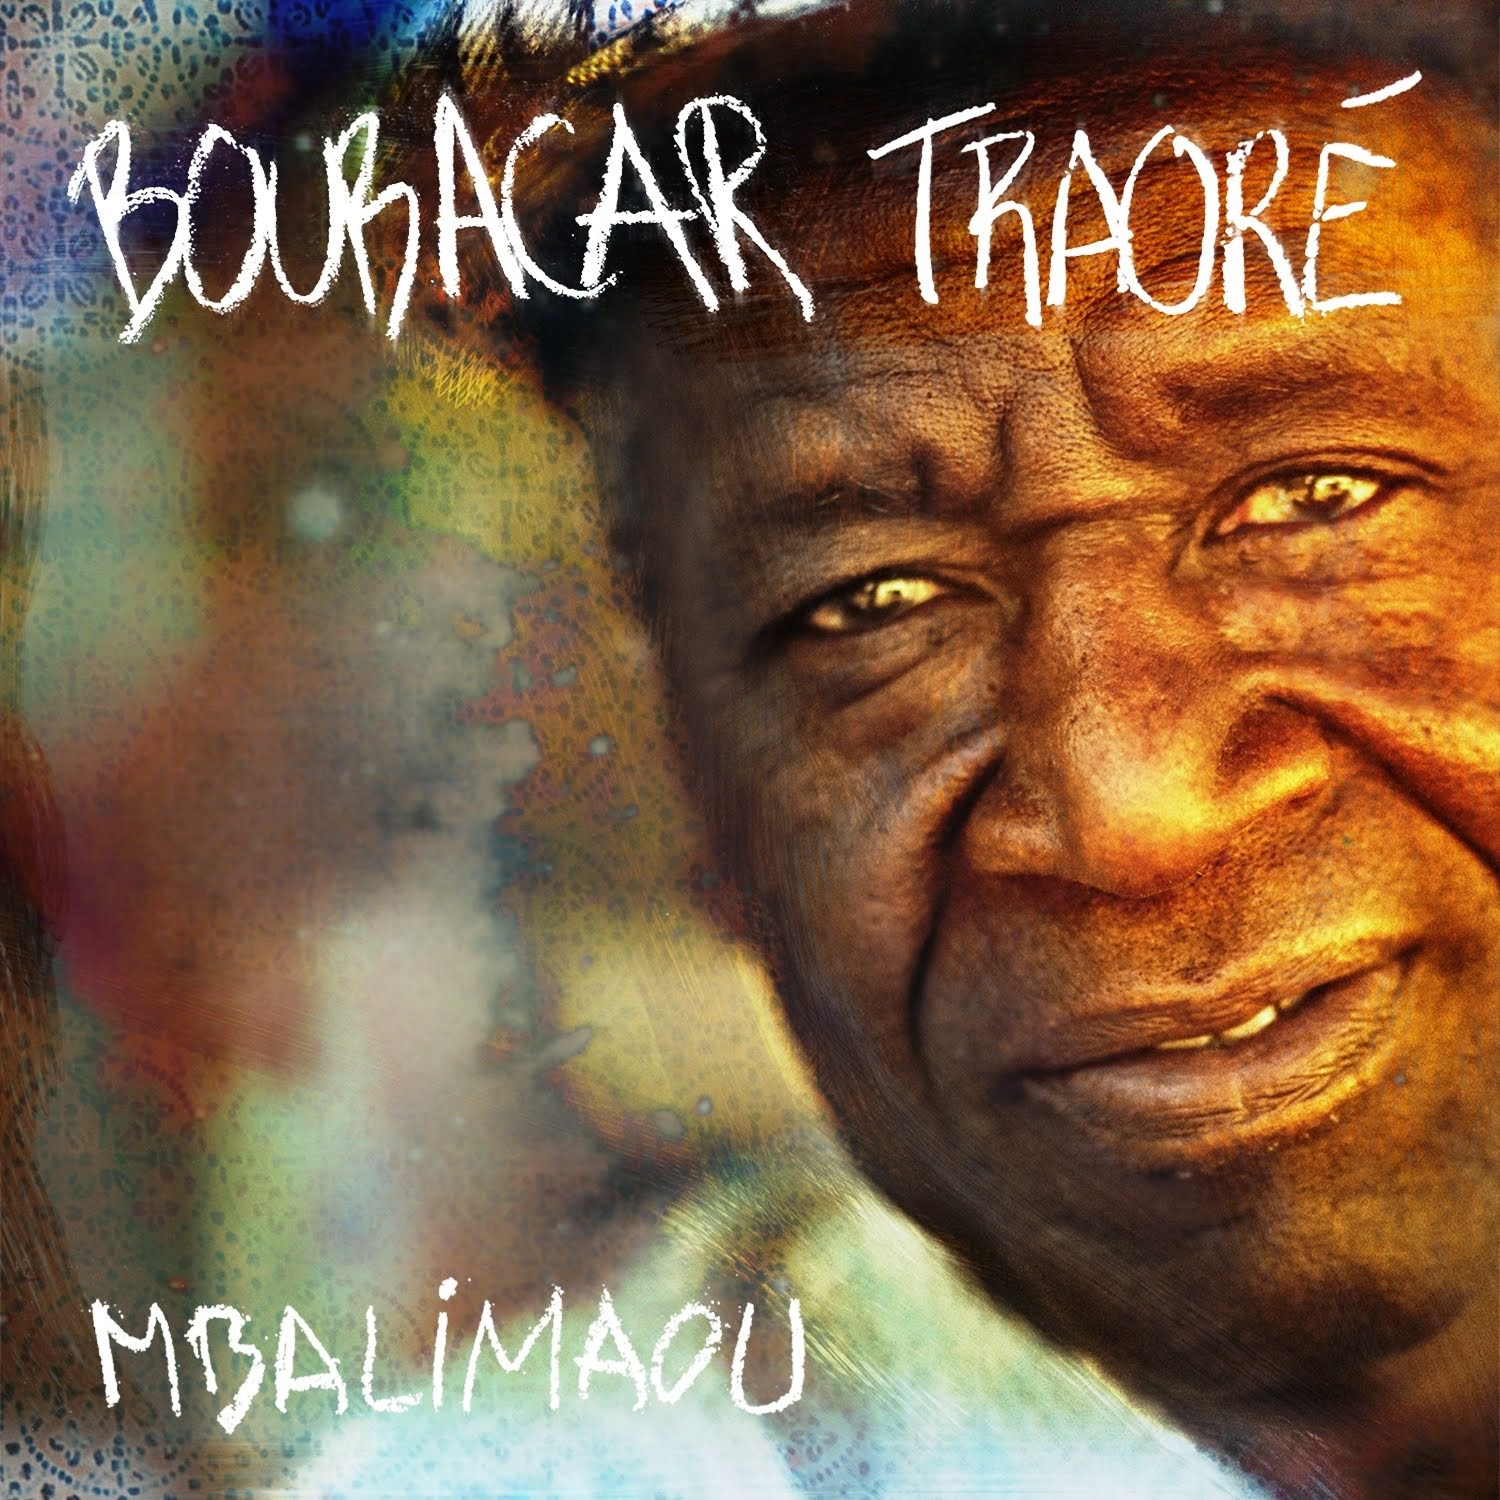 TRAORÉ: MALIAN MUSIC ICON